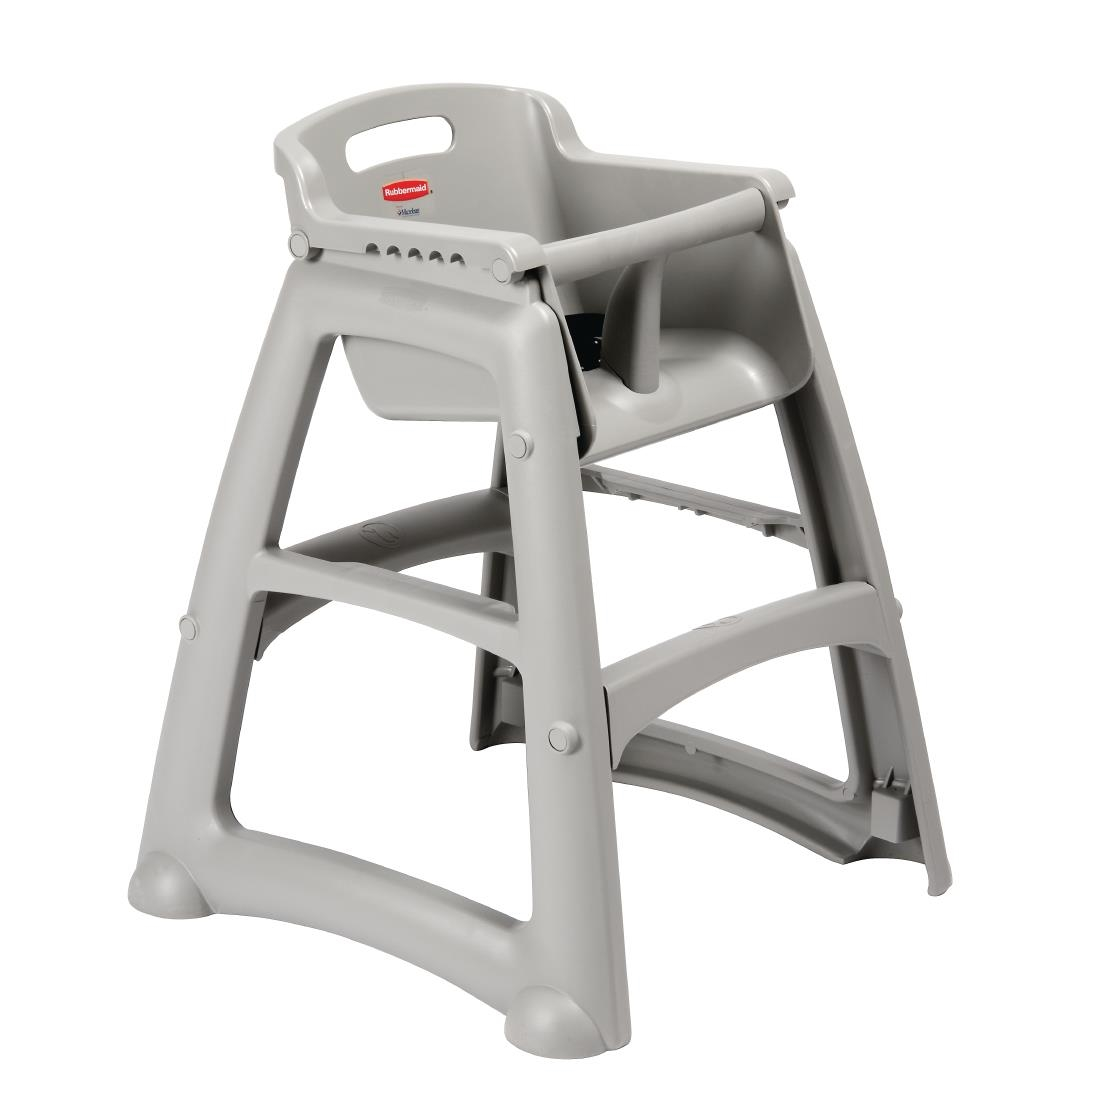 Easy Clean High Chair Details About Rubbermaid Sturdy Stacking High Chairs In Platinum Easy To Clean 756x597x597mm